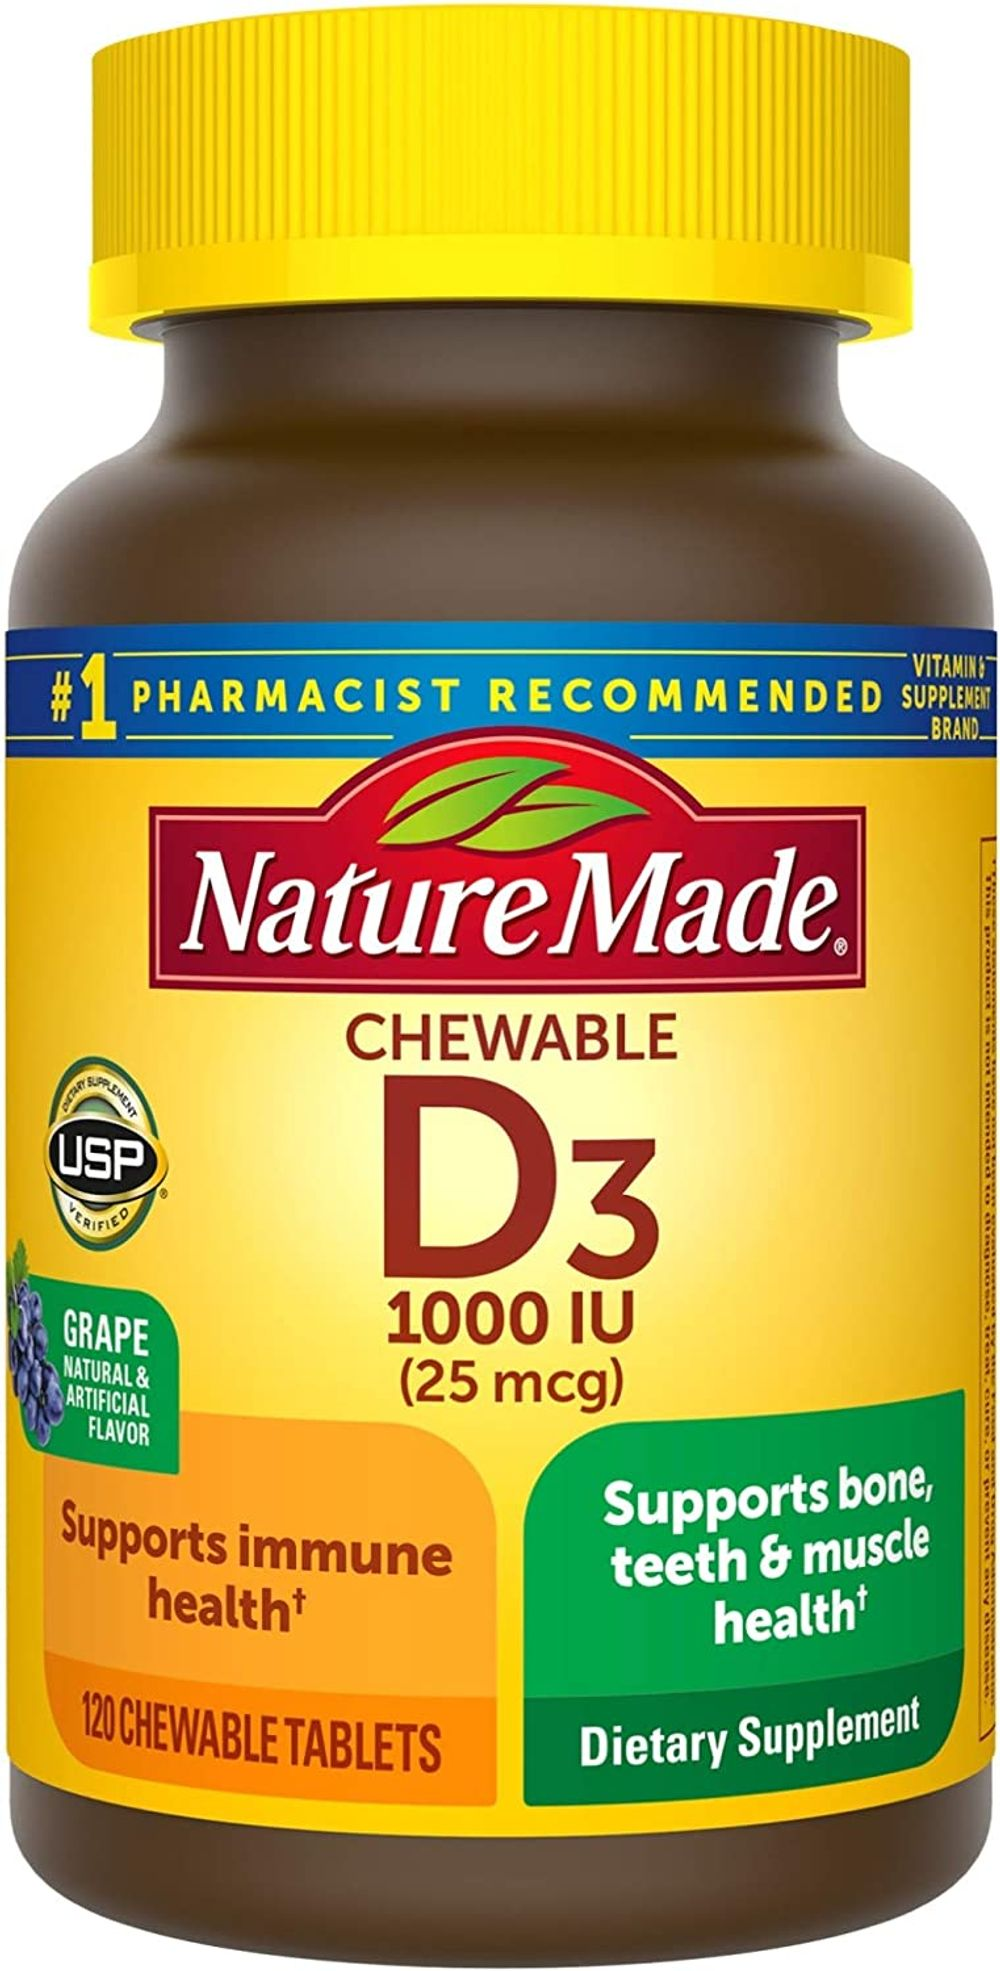 Vitamin D3, 120 Chewable Tablets, Vitamin D 1000 IU (25 mcg) Helps Support Immune Health, Strong Bones and Teeth, & Muscle Function, One Daily Chewable Tablet